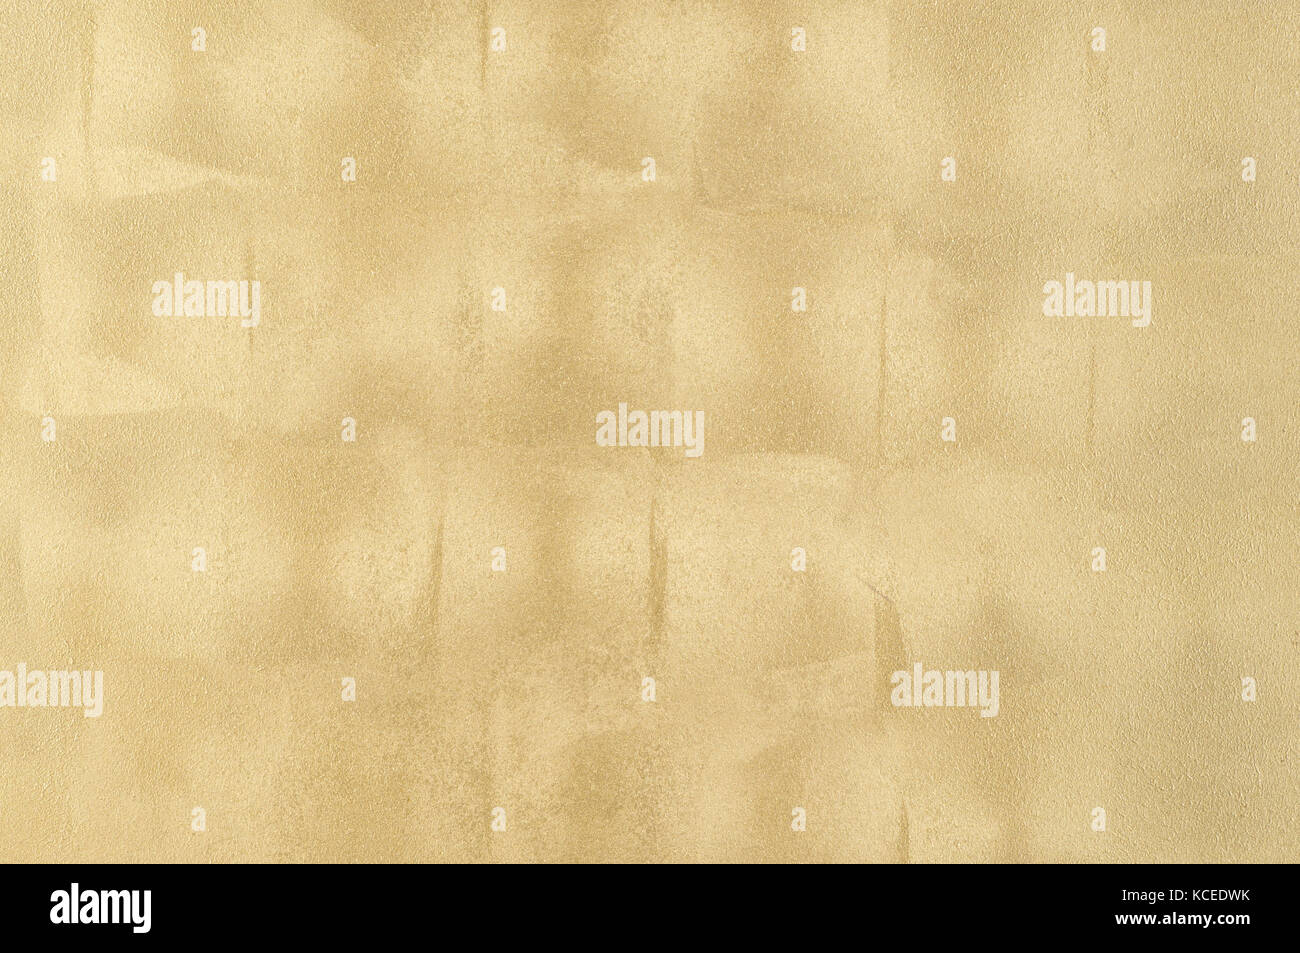 Plaster Gold Stock Photos & Plaster Gold Stock Images - Page 3 - Alamy